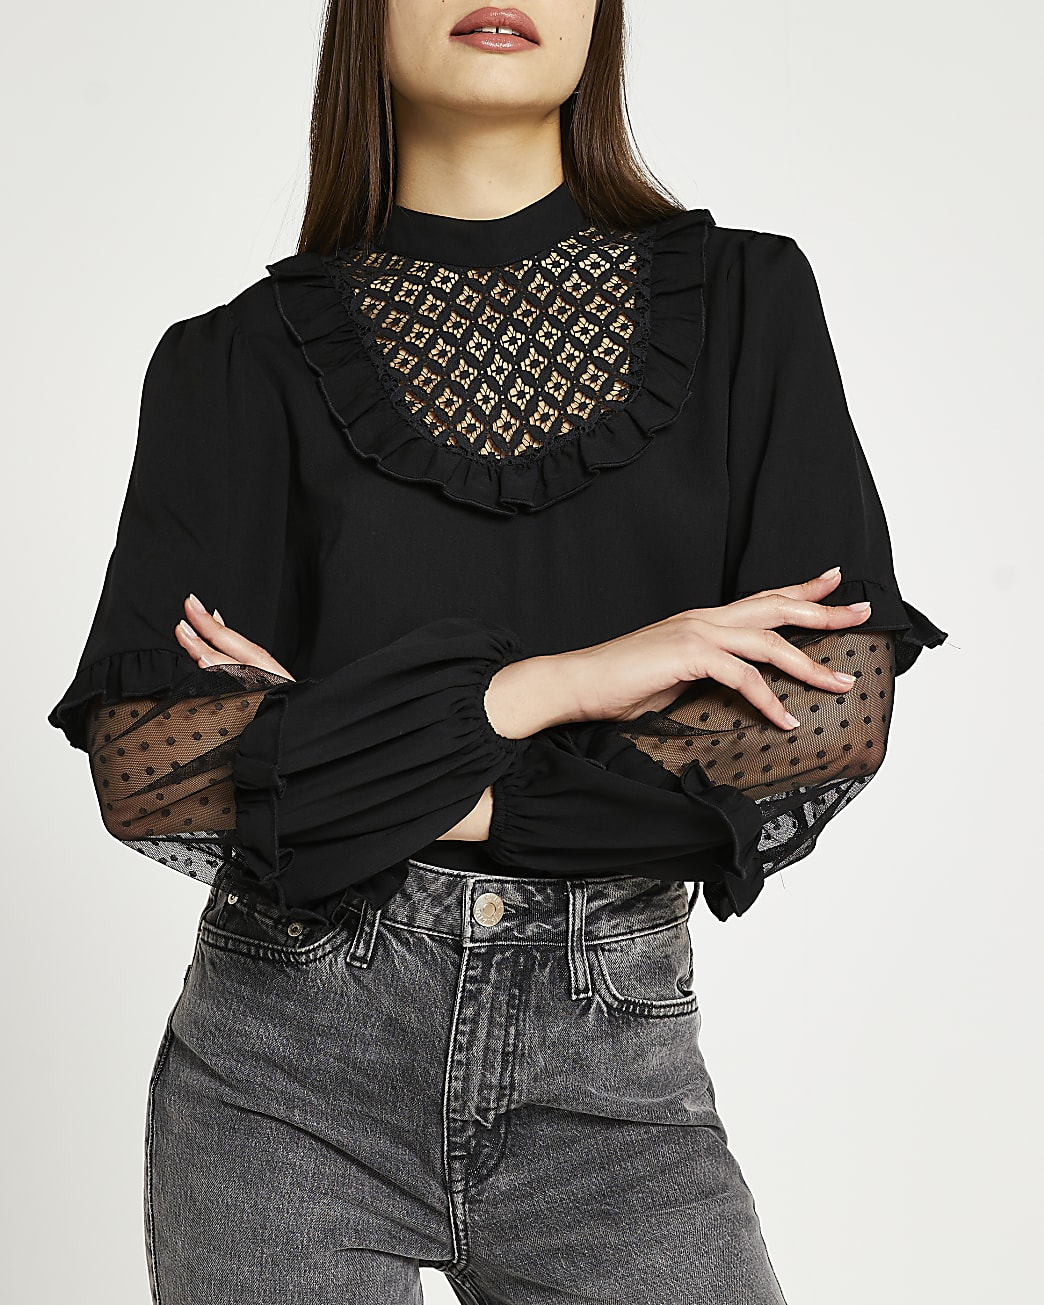 Black lace frill long sleeve blouse top